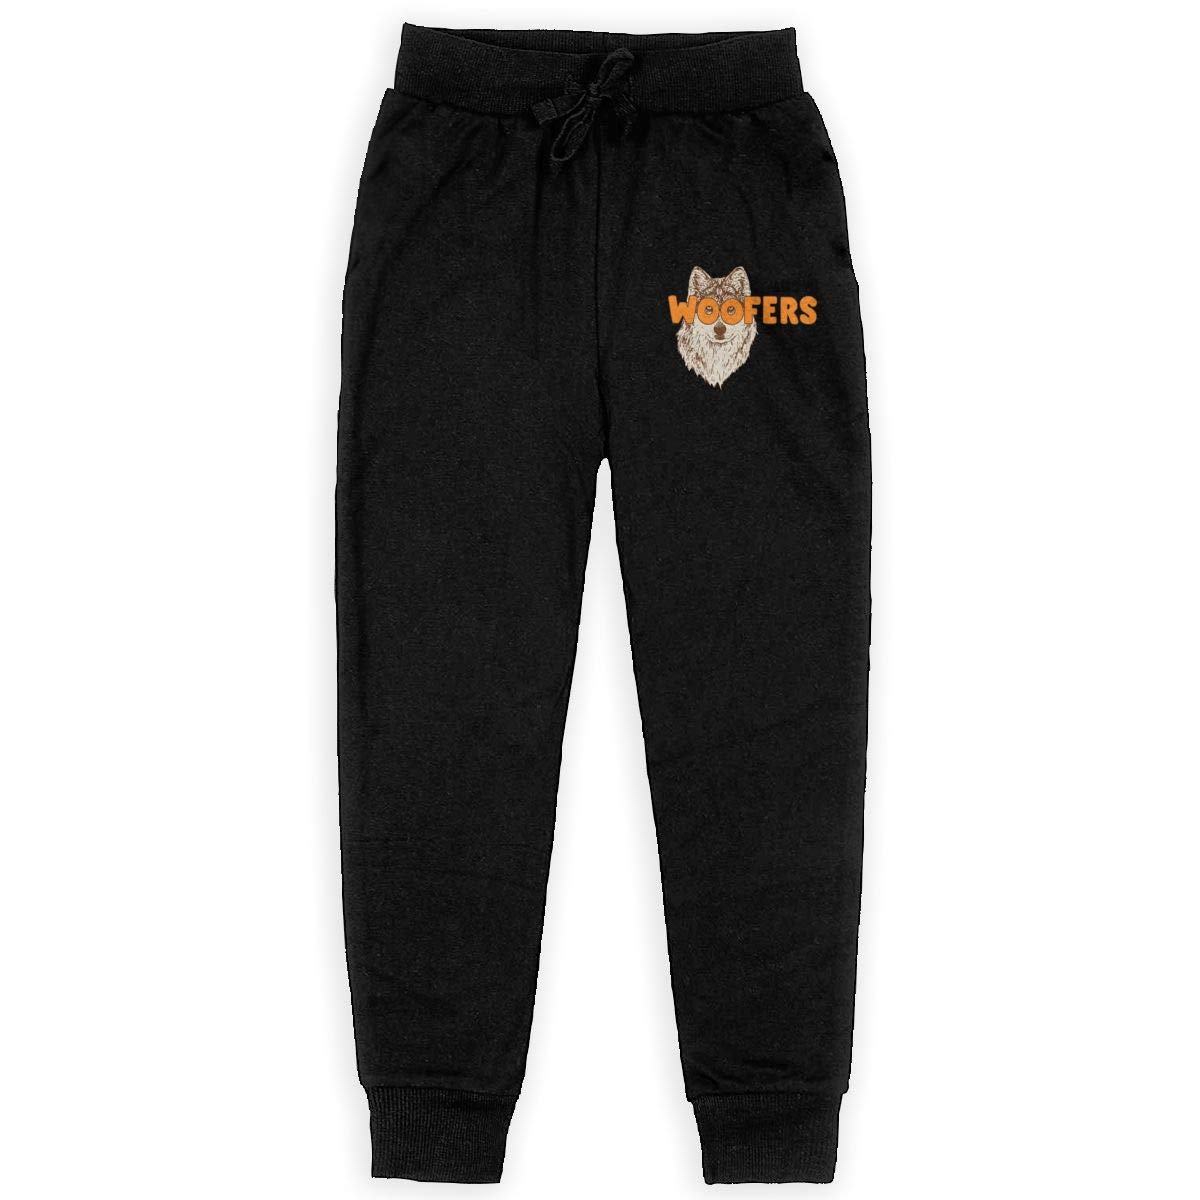 Dunpaiaa Woofers Boys Sweatpants,Joggers Sport Training Pants Trousers Black